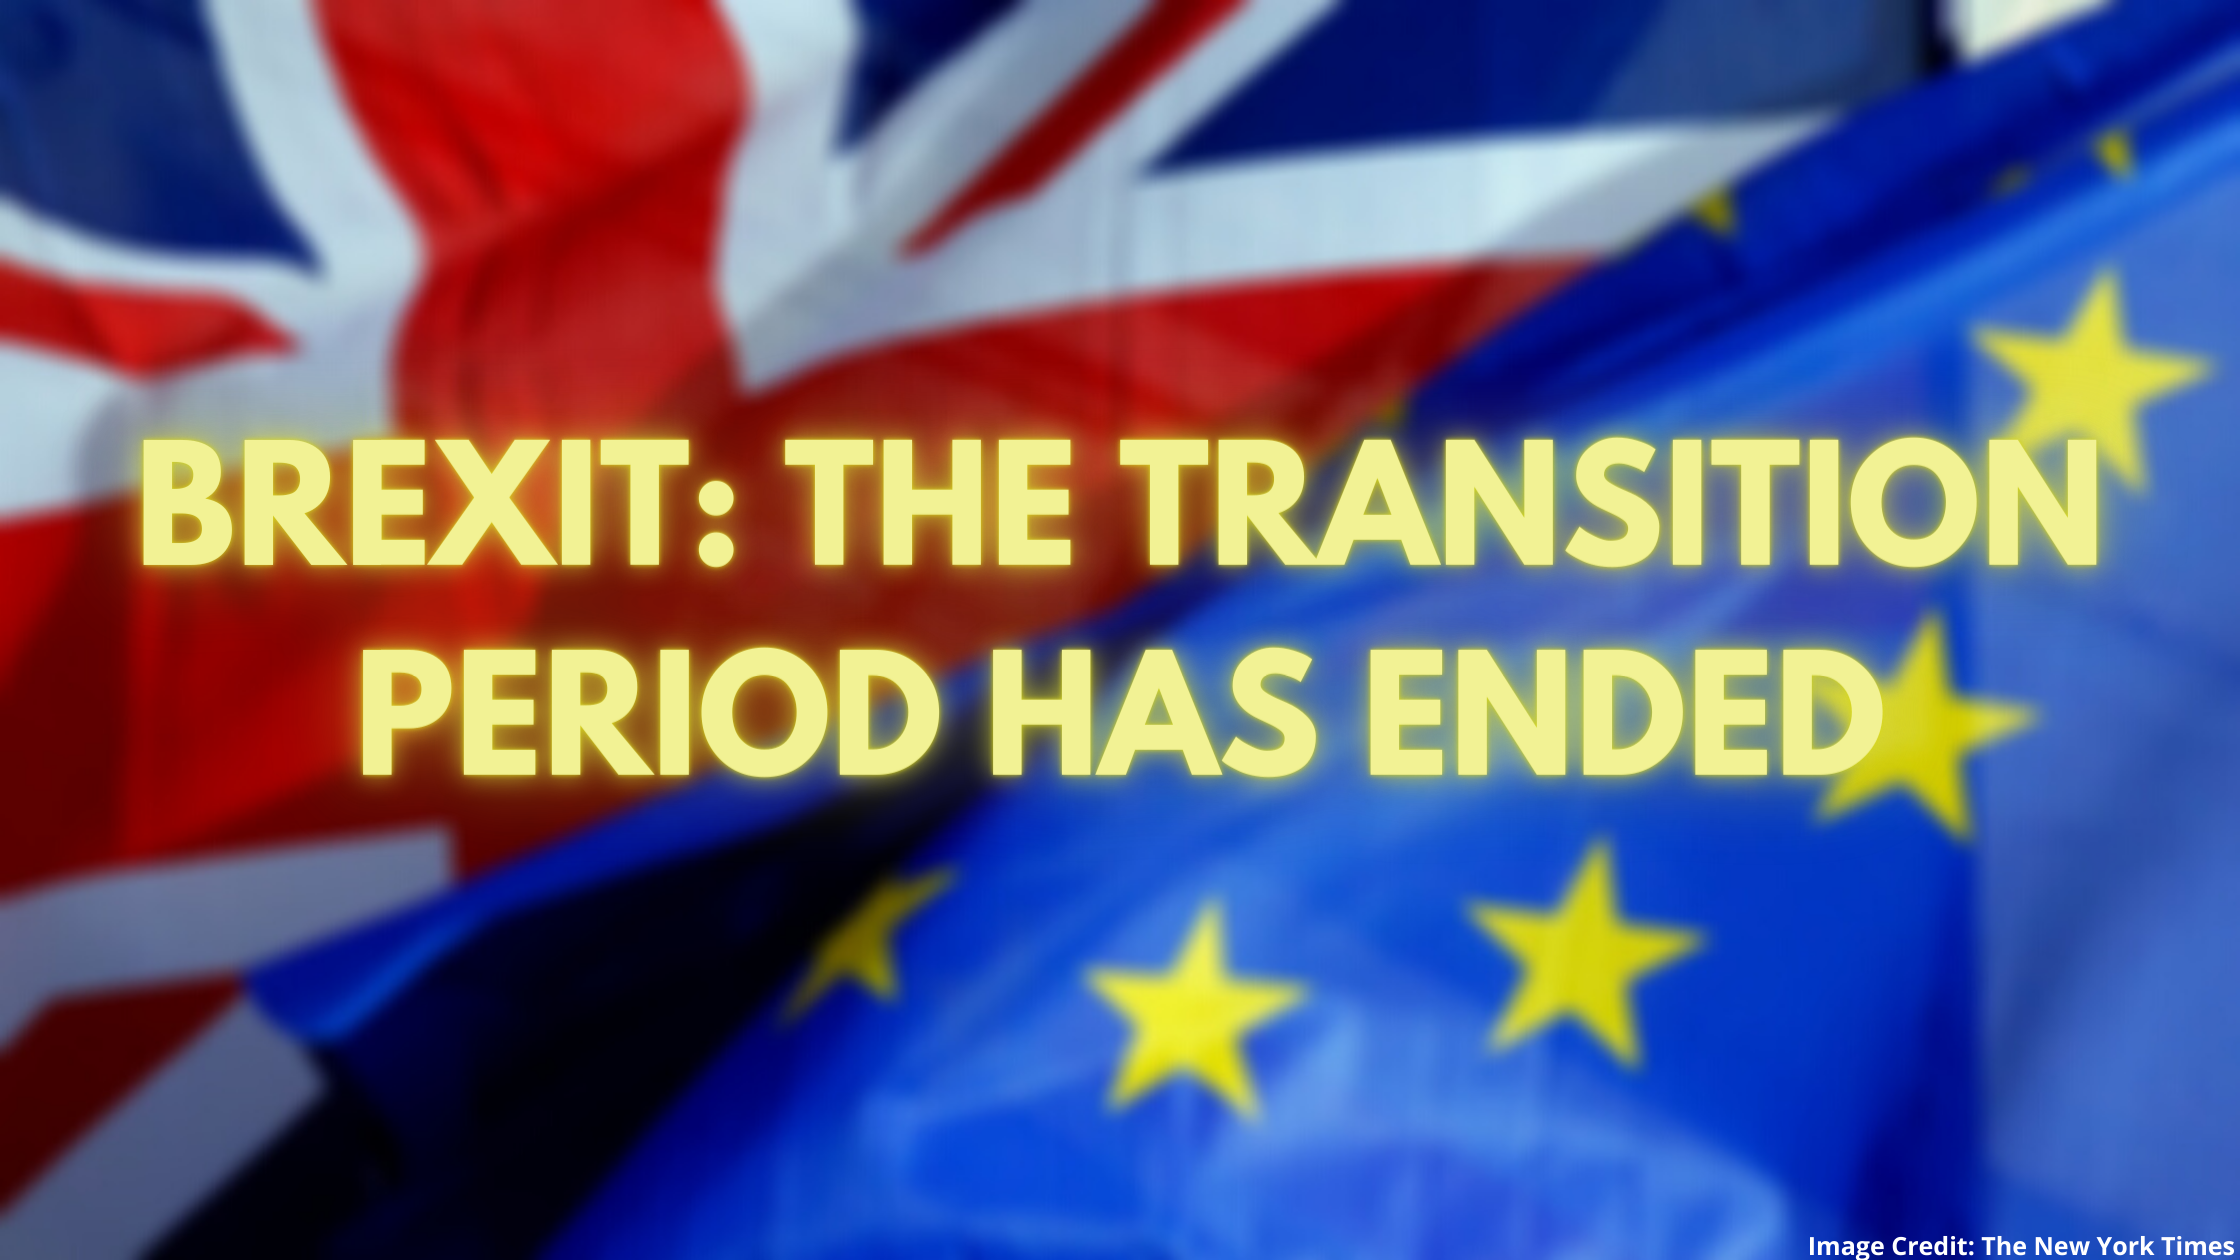 The Brexit Transition Period Has Ended